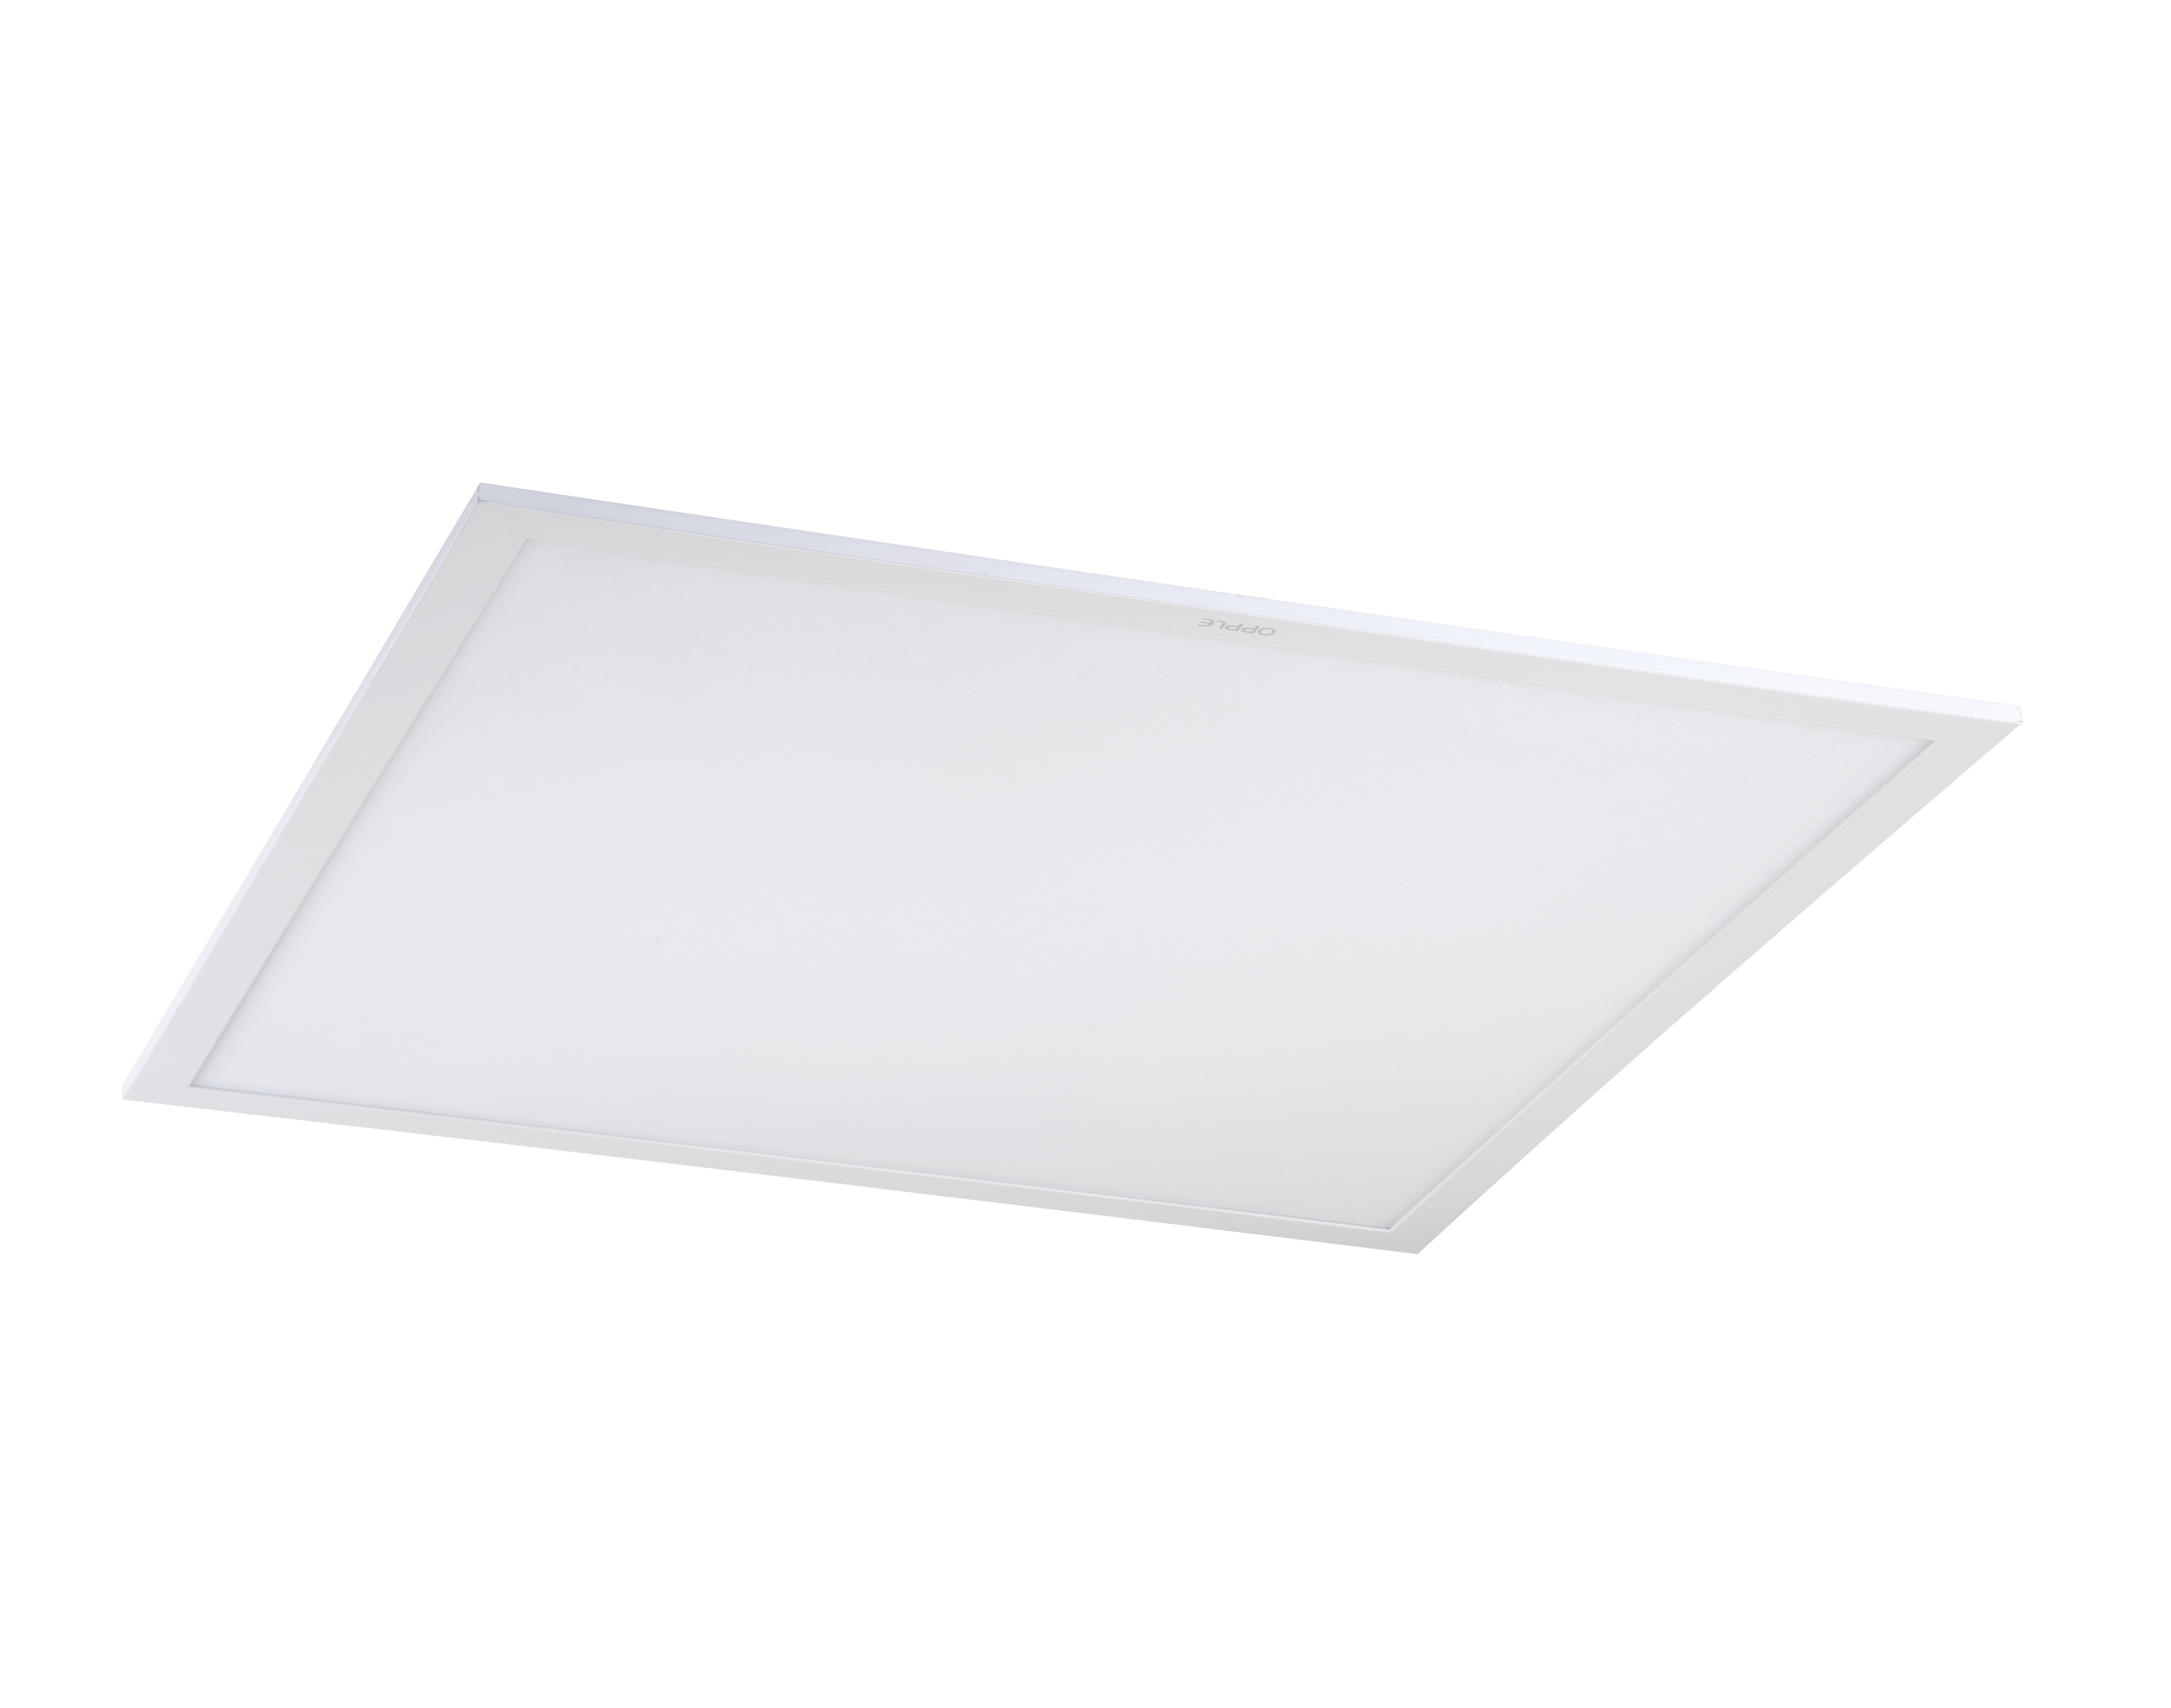 Plafoniera Led Con Emergenza Integrata : Ledpanelrc s b sq w wh opple lighting